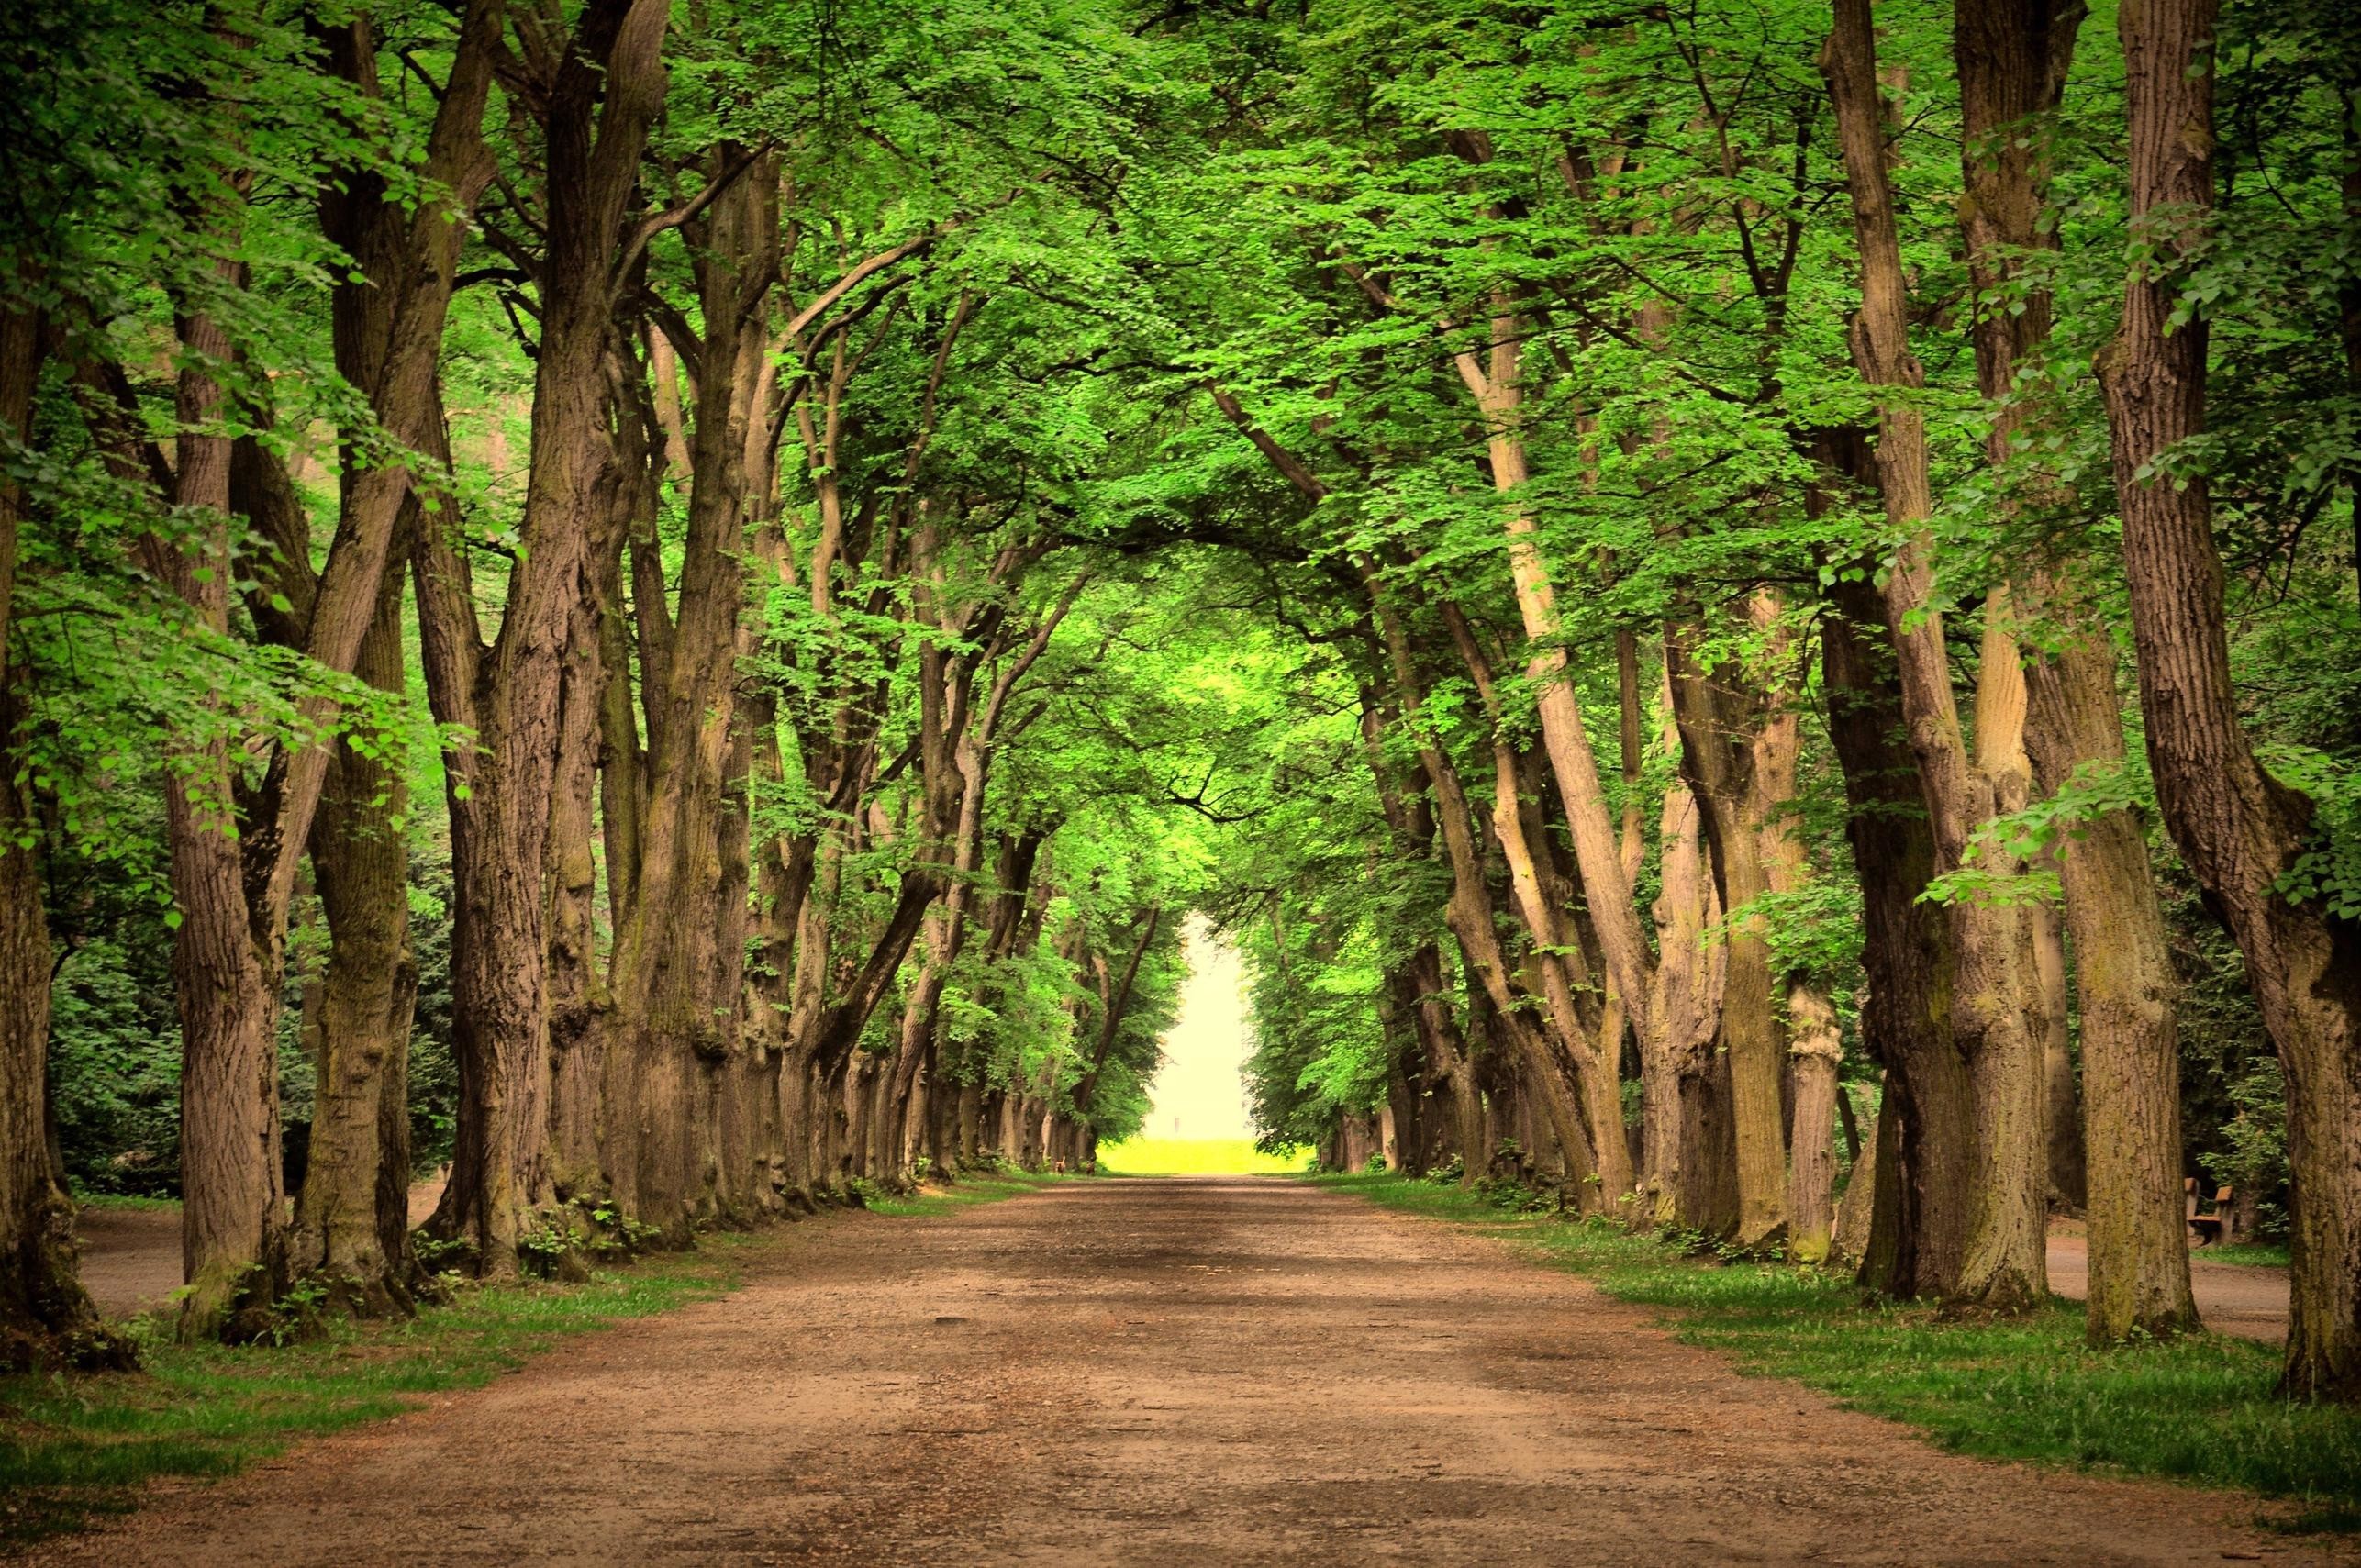 Scenic path in the woods wallpaper 4288×2848 – Wallpaper .